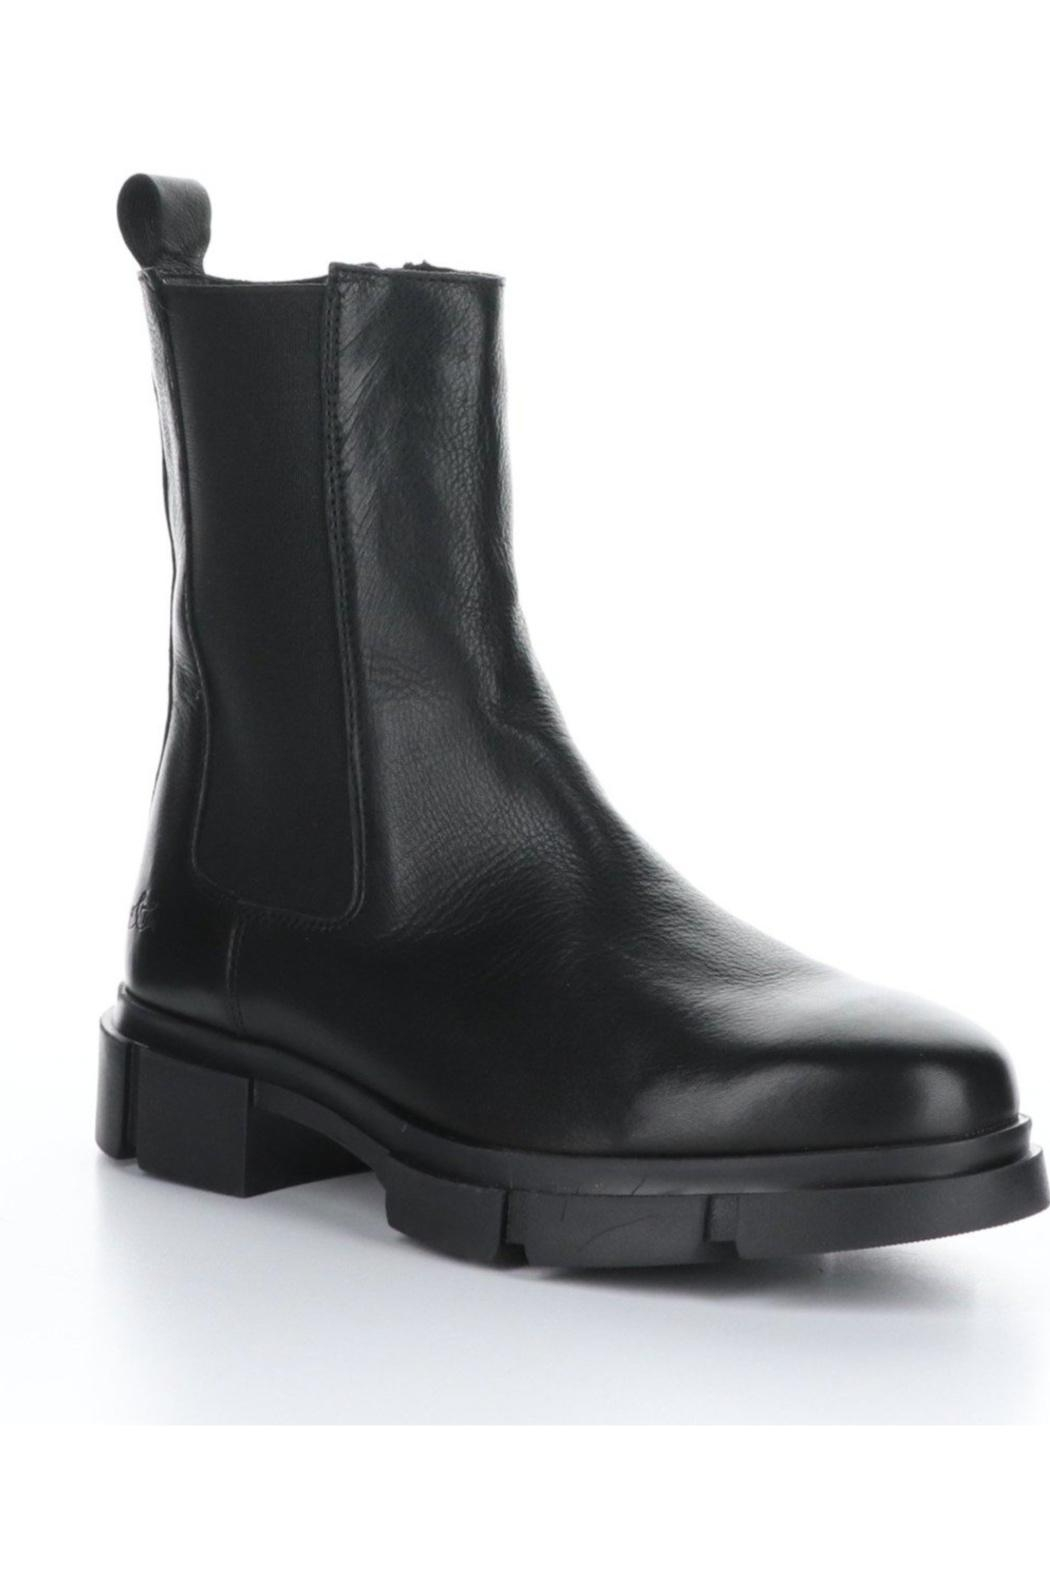 Bos & Co. Lock Boot - Black - Side Cropped Image